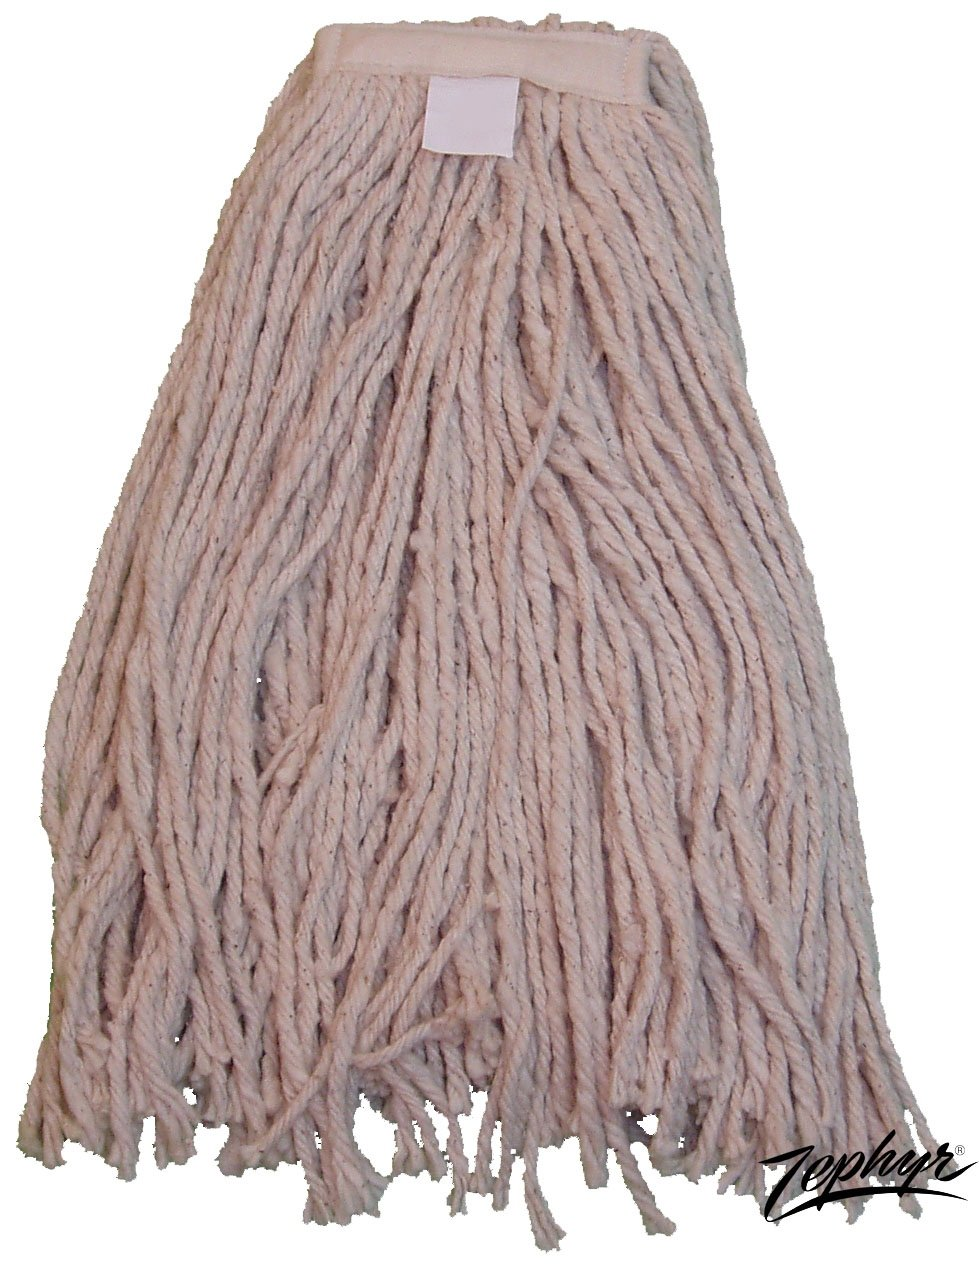 Zephyr 9001 BBL Cotton Wet Mop Head, #16 Size (Pack of 12) by Zephyr